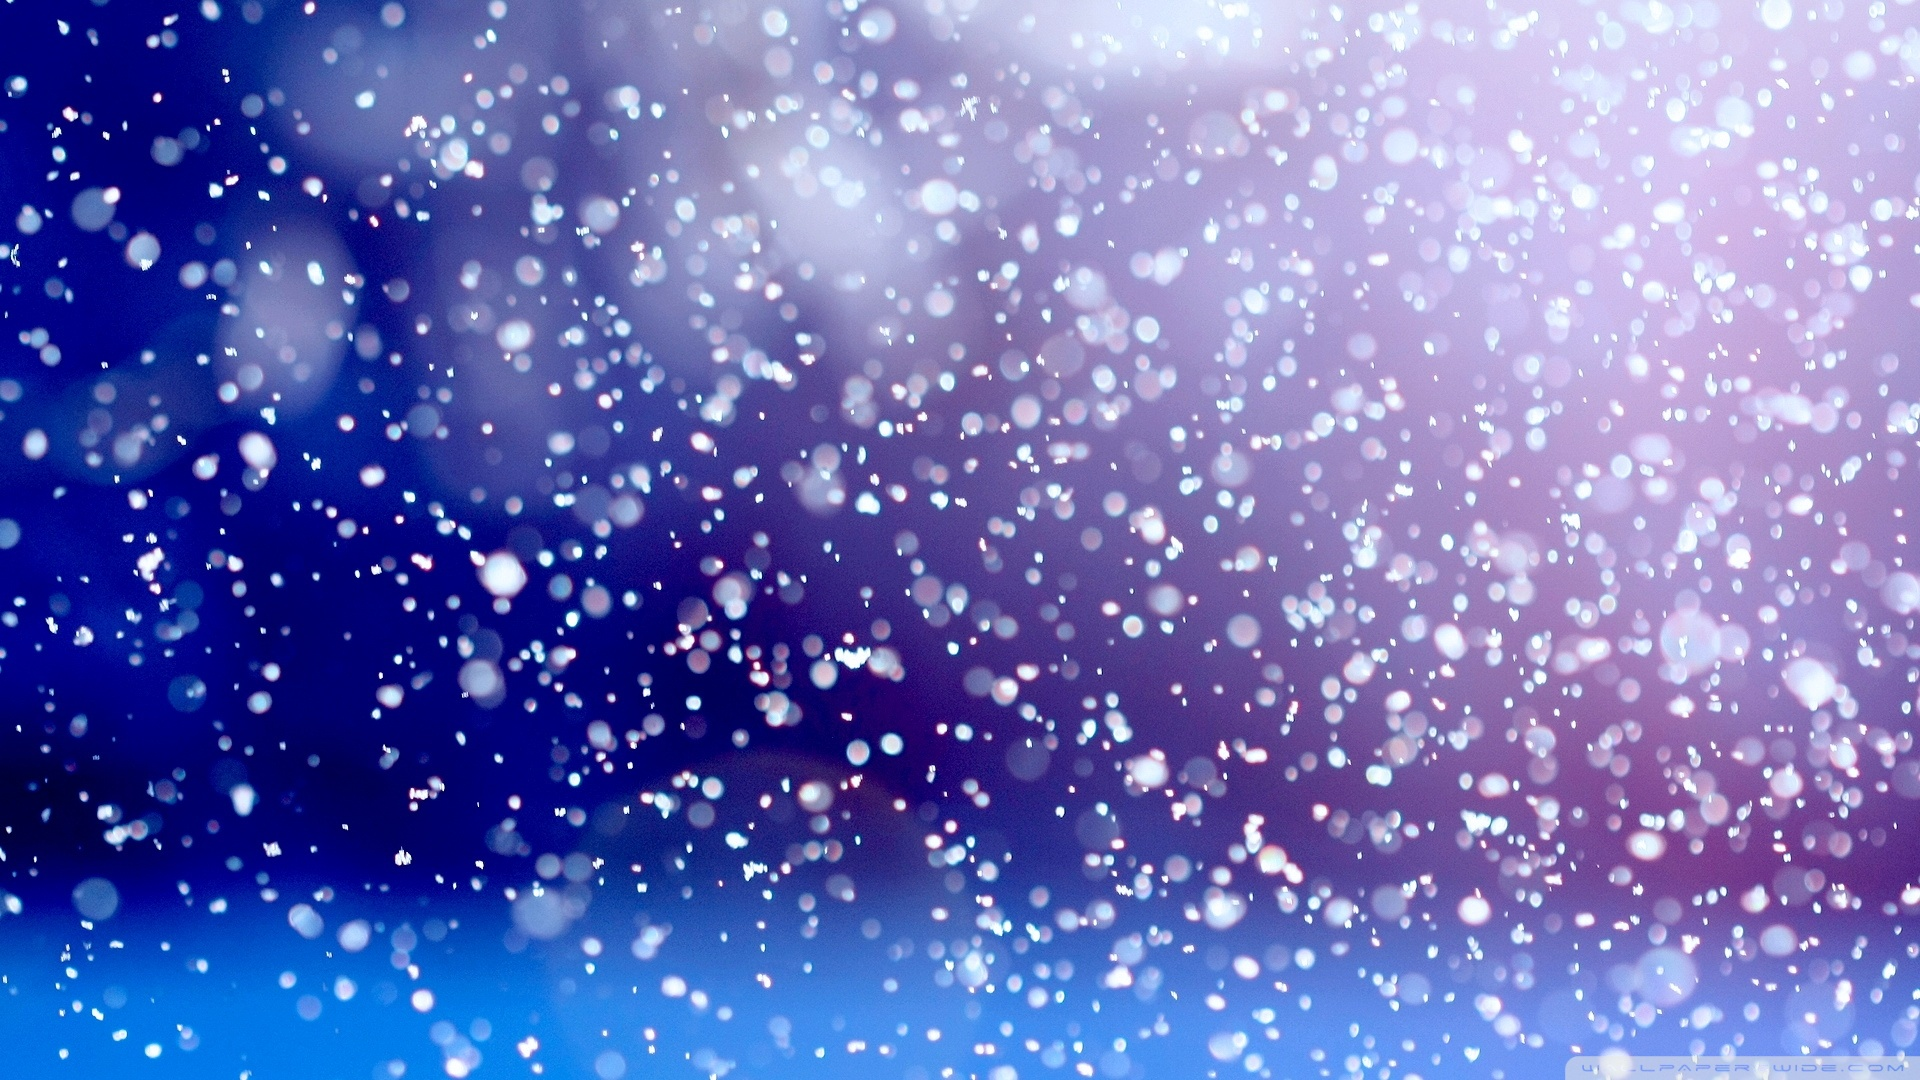 animated snow falling wallpaper